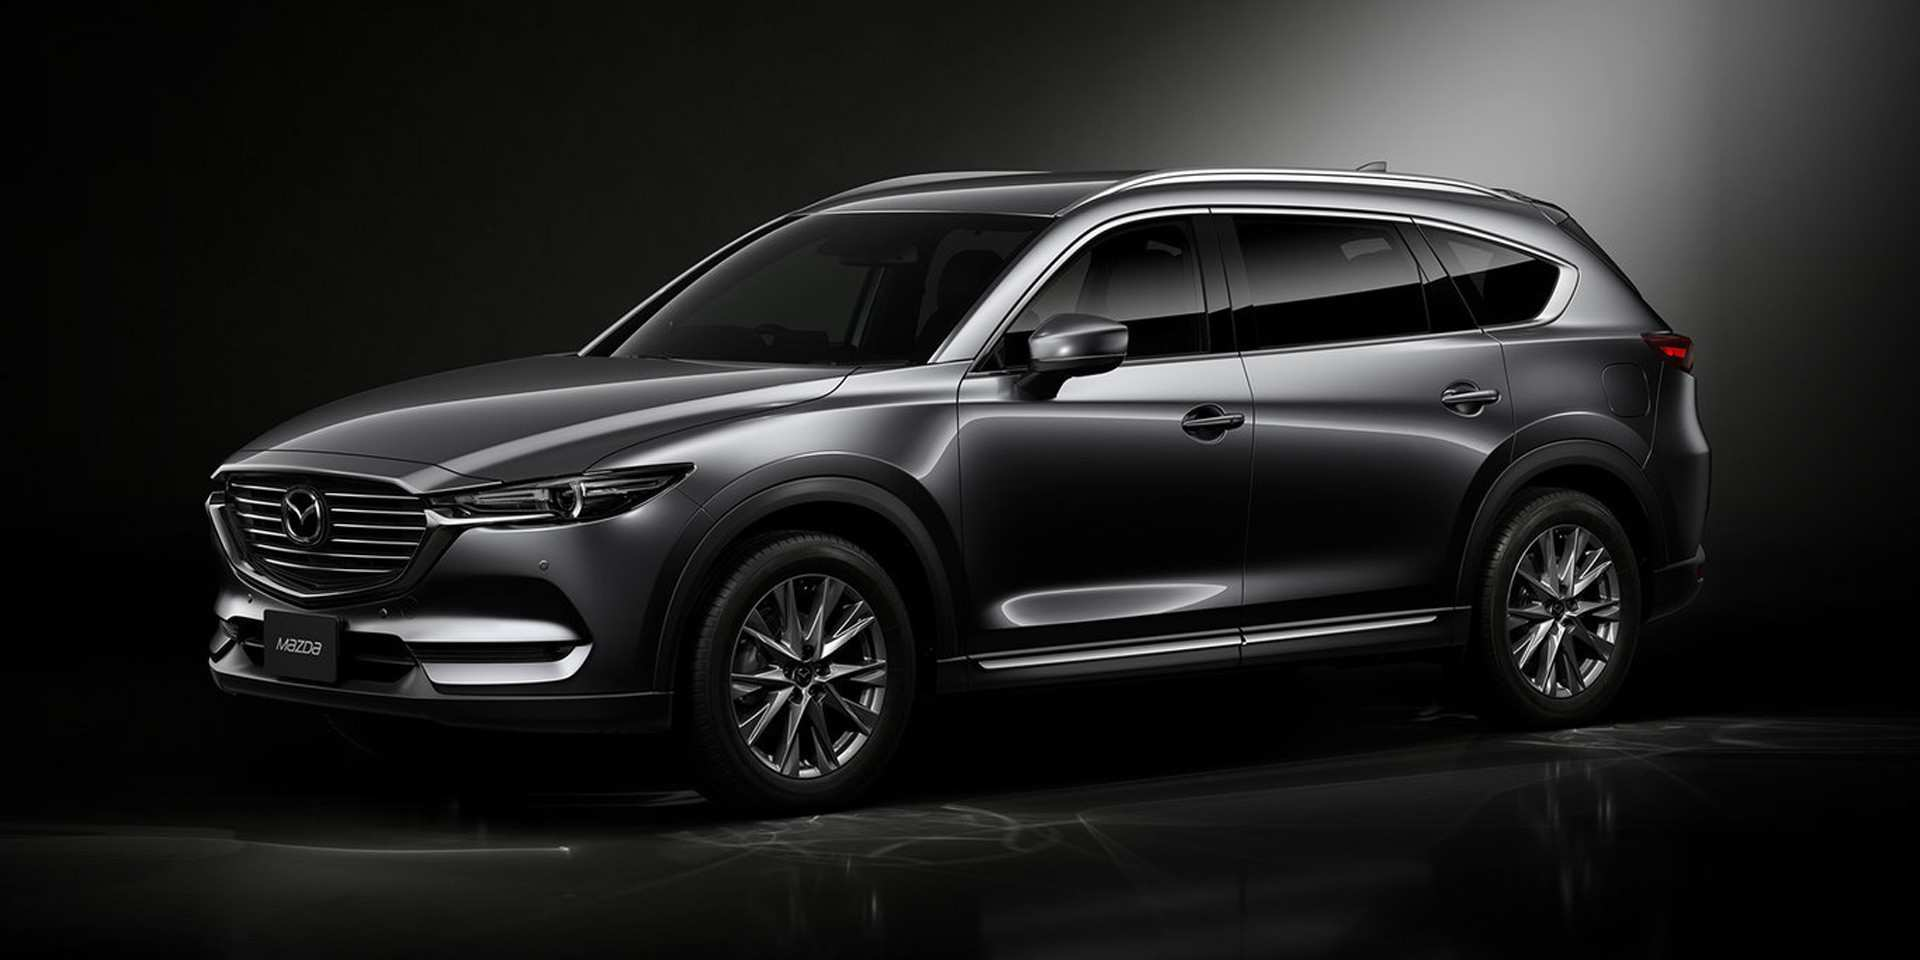 33 New 2020 Mazda Cx 9 Length Prices with 2020 Mazda Cx 9 Length